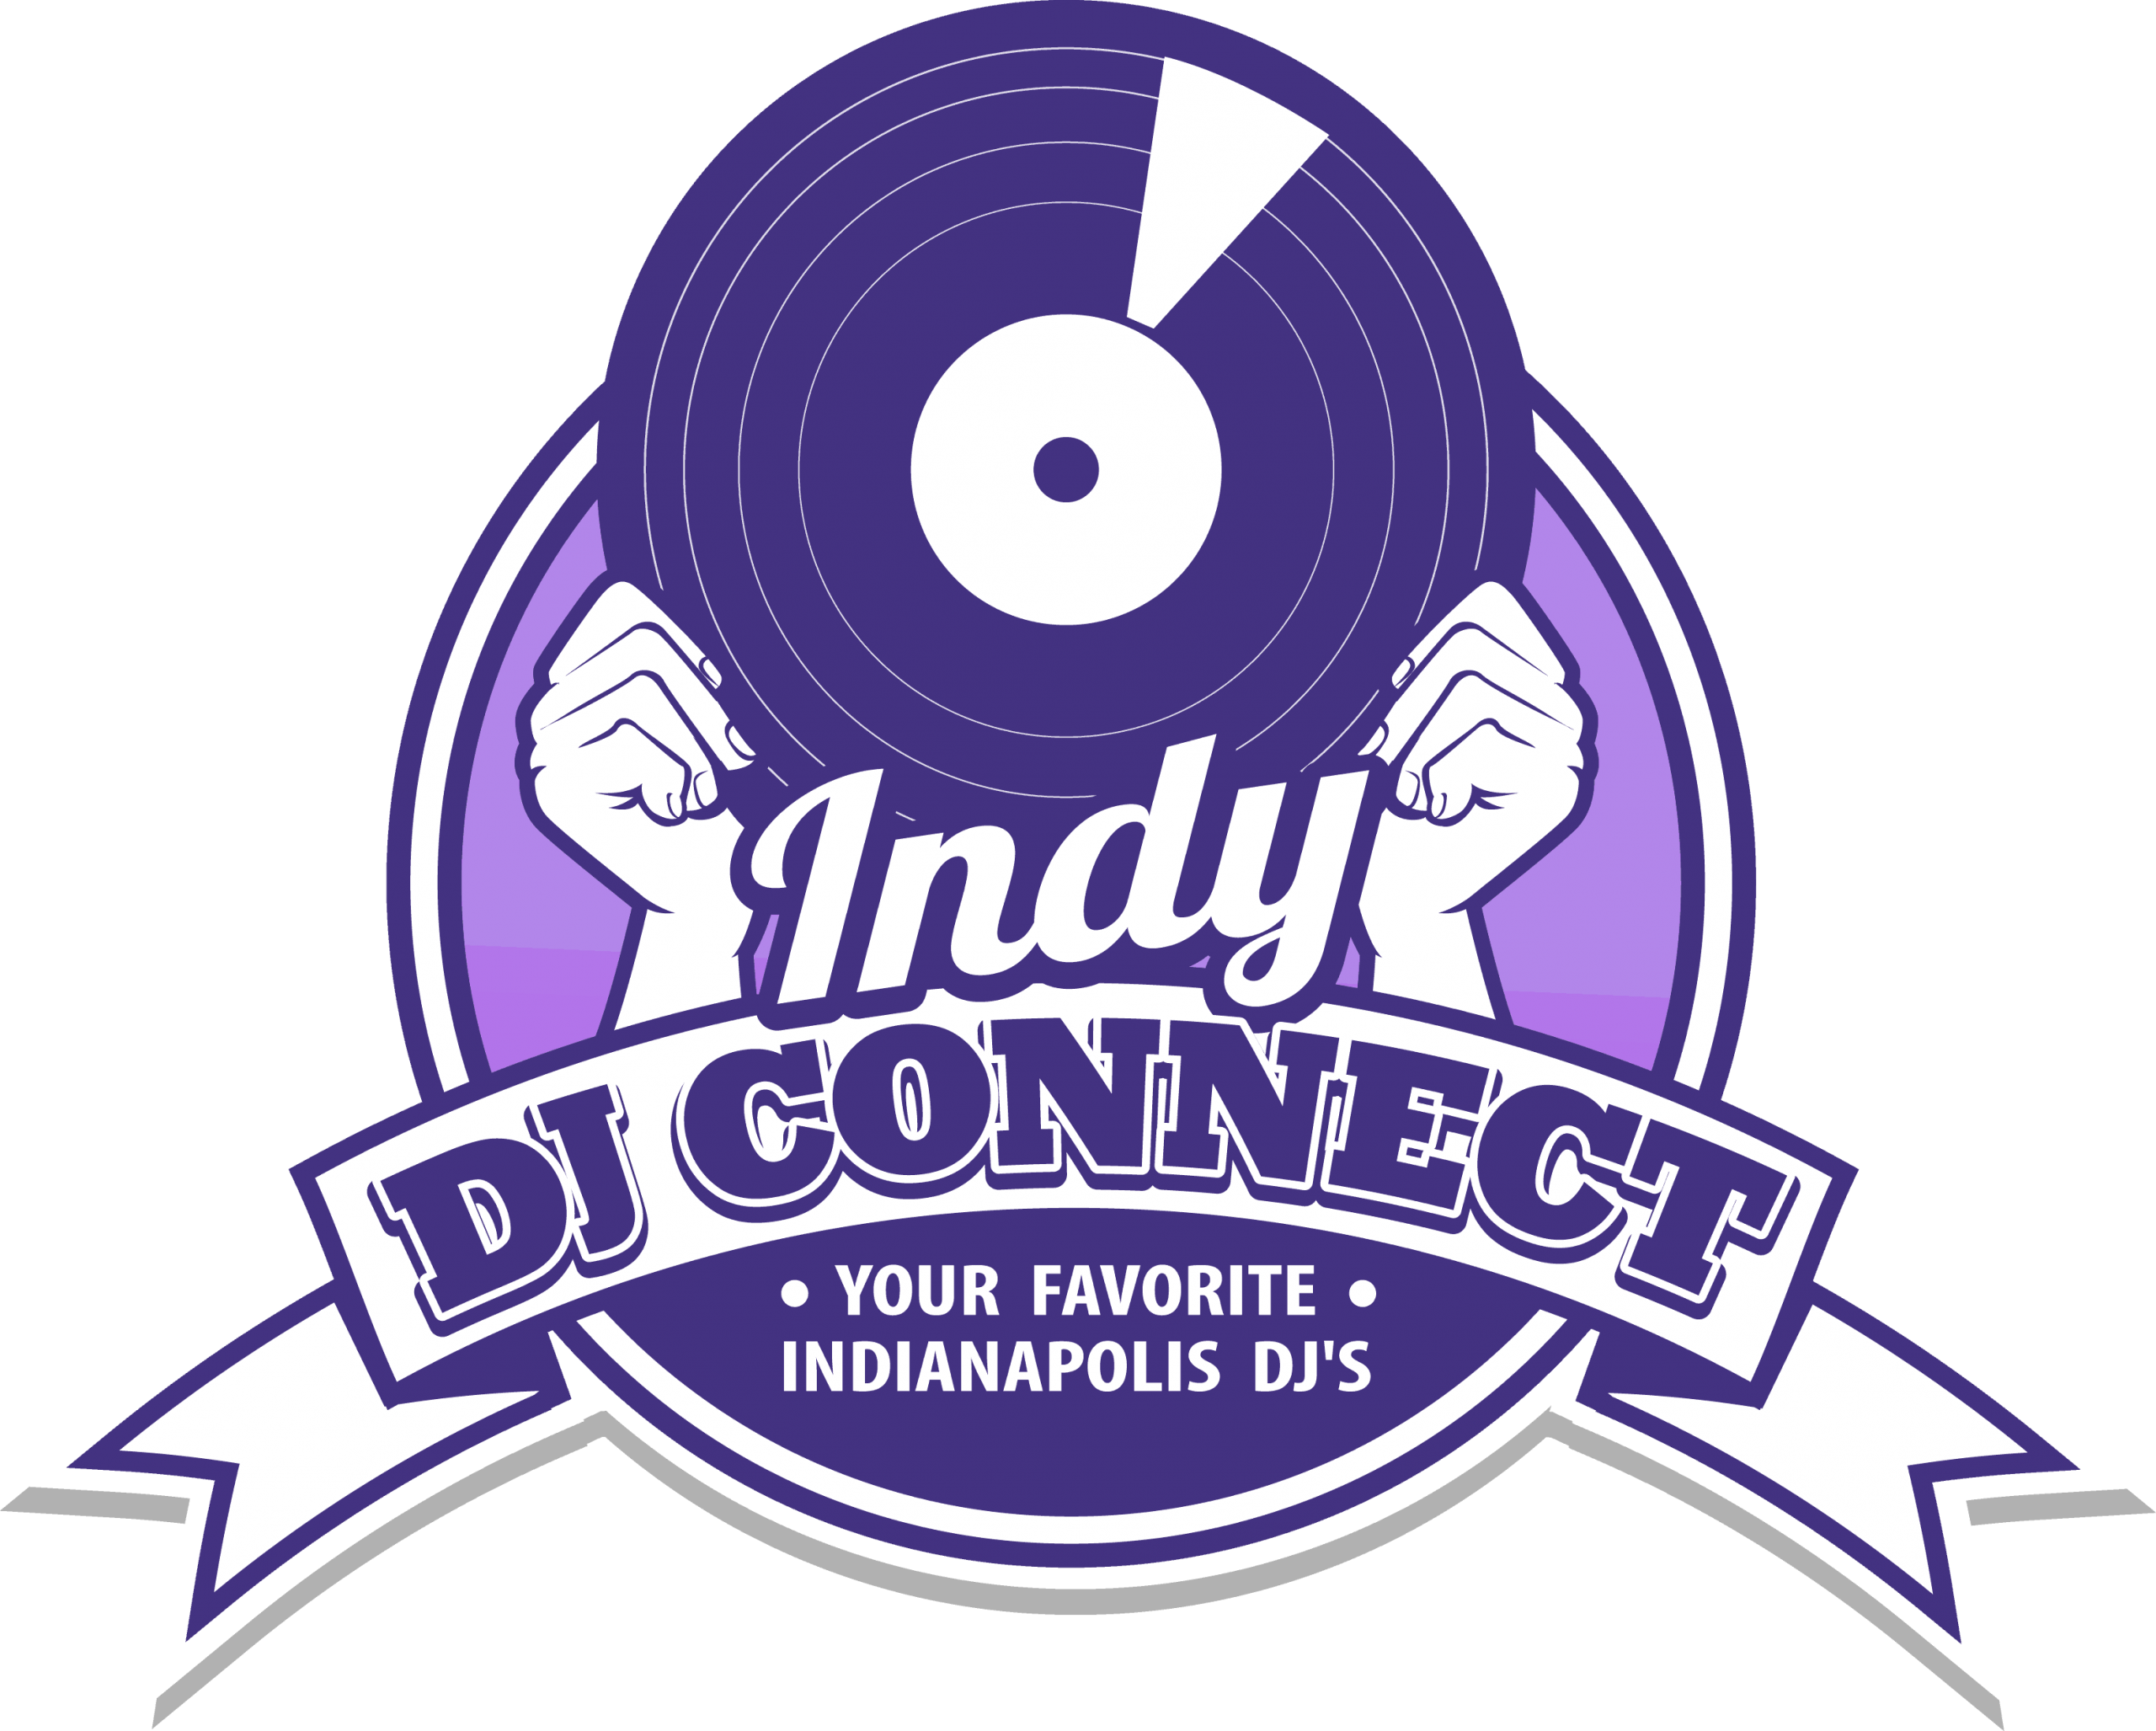 Indy DJ Connect